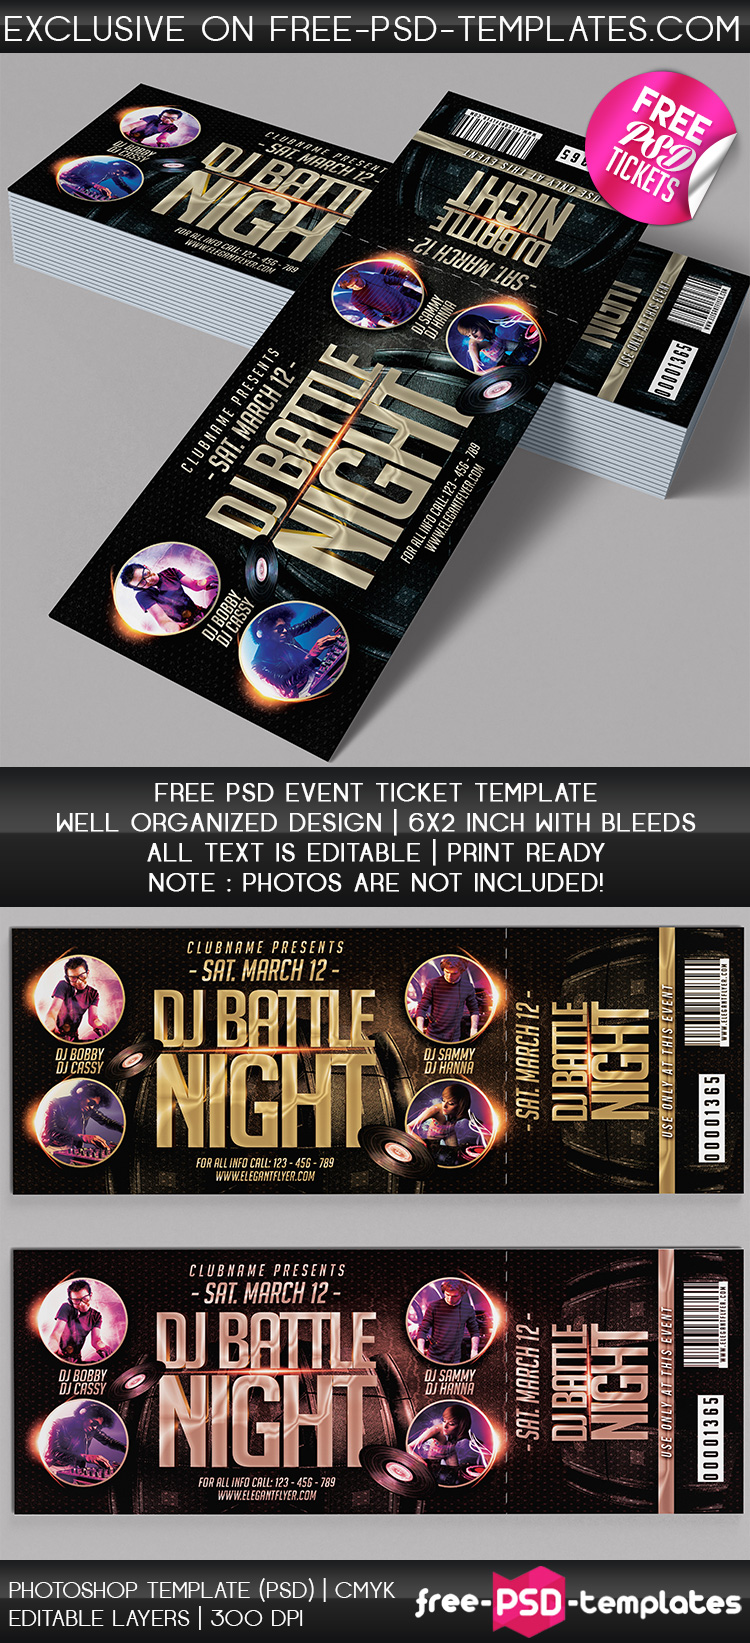 Event Ticket Template Free from free-psd-templates.com